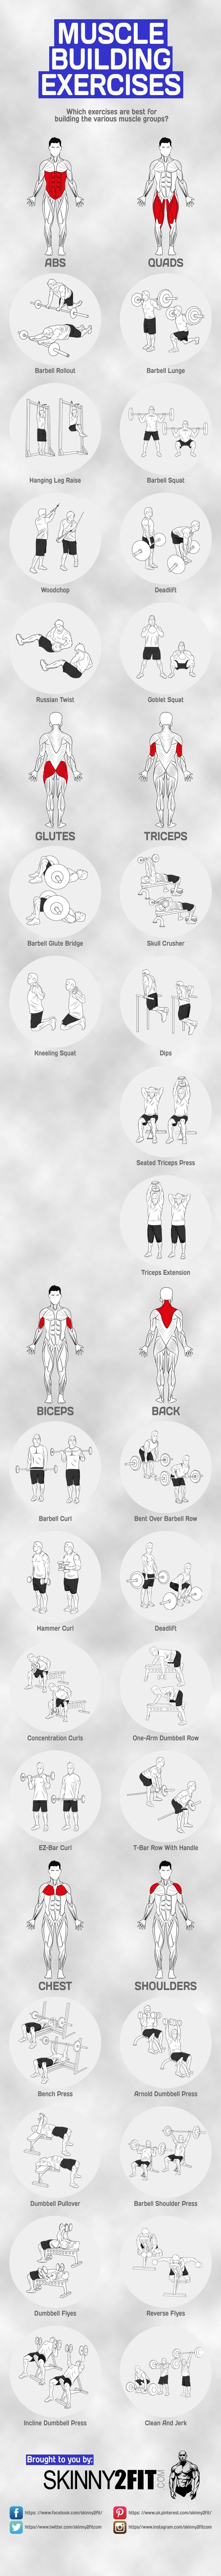 What are the top muscle building exercises for each muscle group? This graphic will show you the bes...